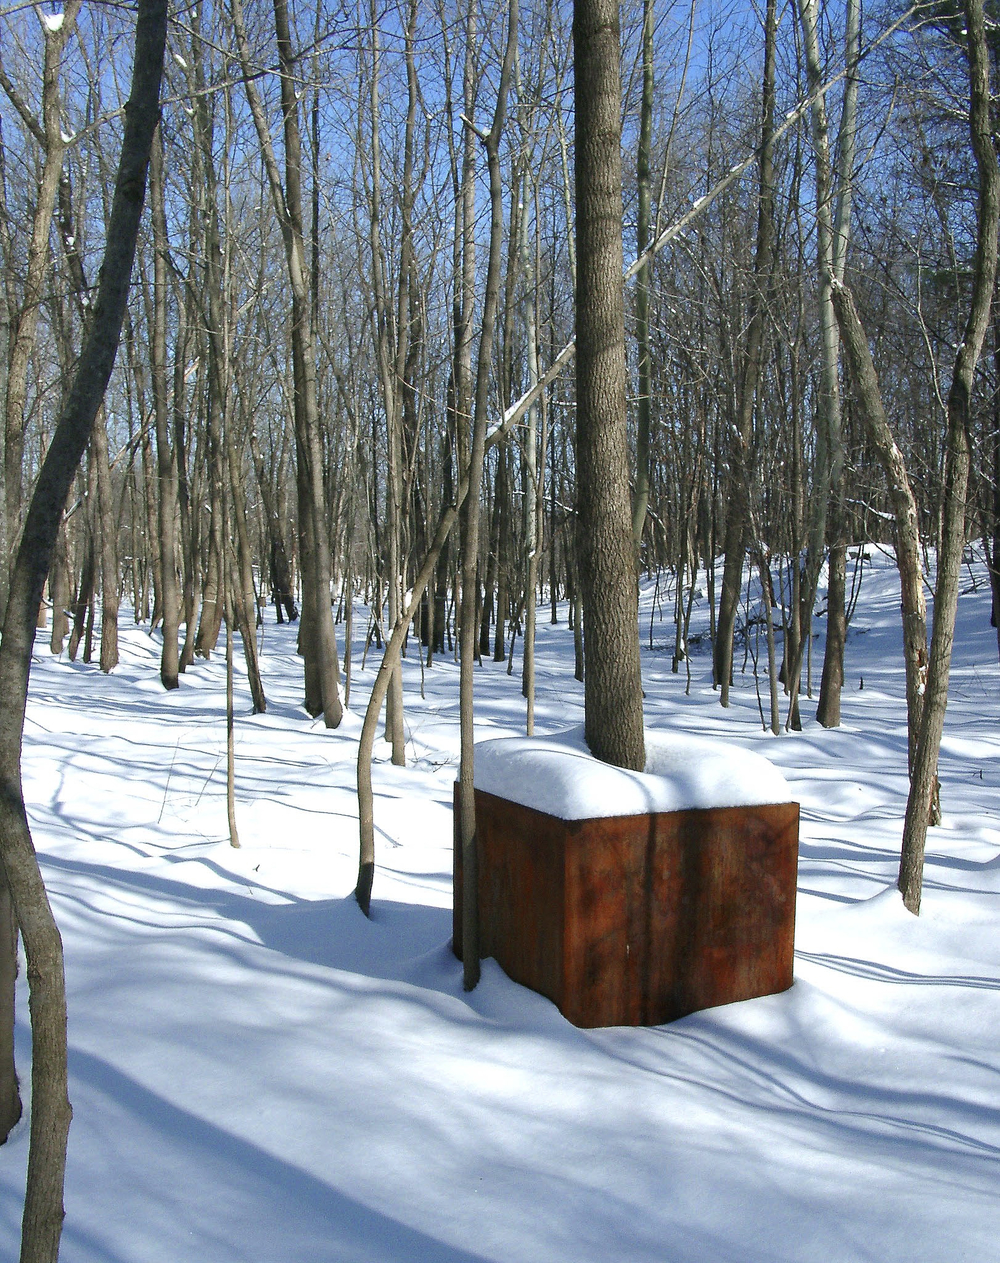 sculpture_tree_cube_snow_flood_fall_siu_carbondale_il_2003-04-27_[18 tree cube snow]_12859.jpg